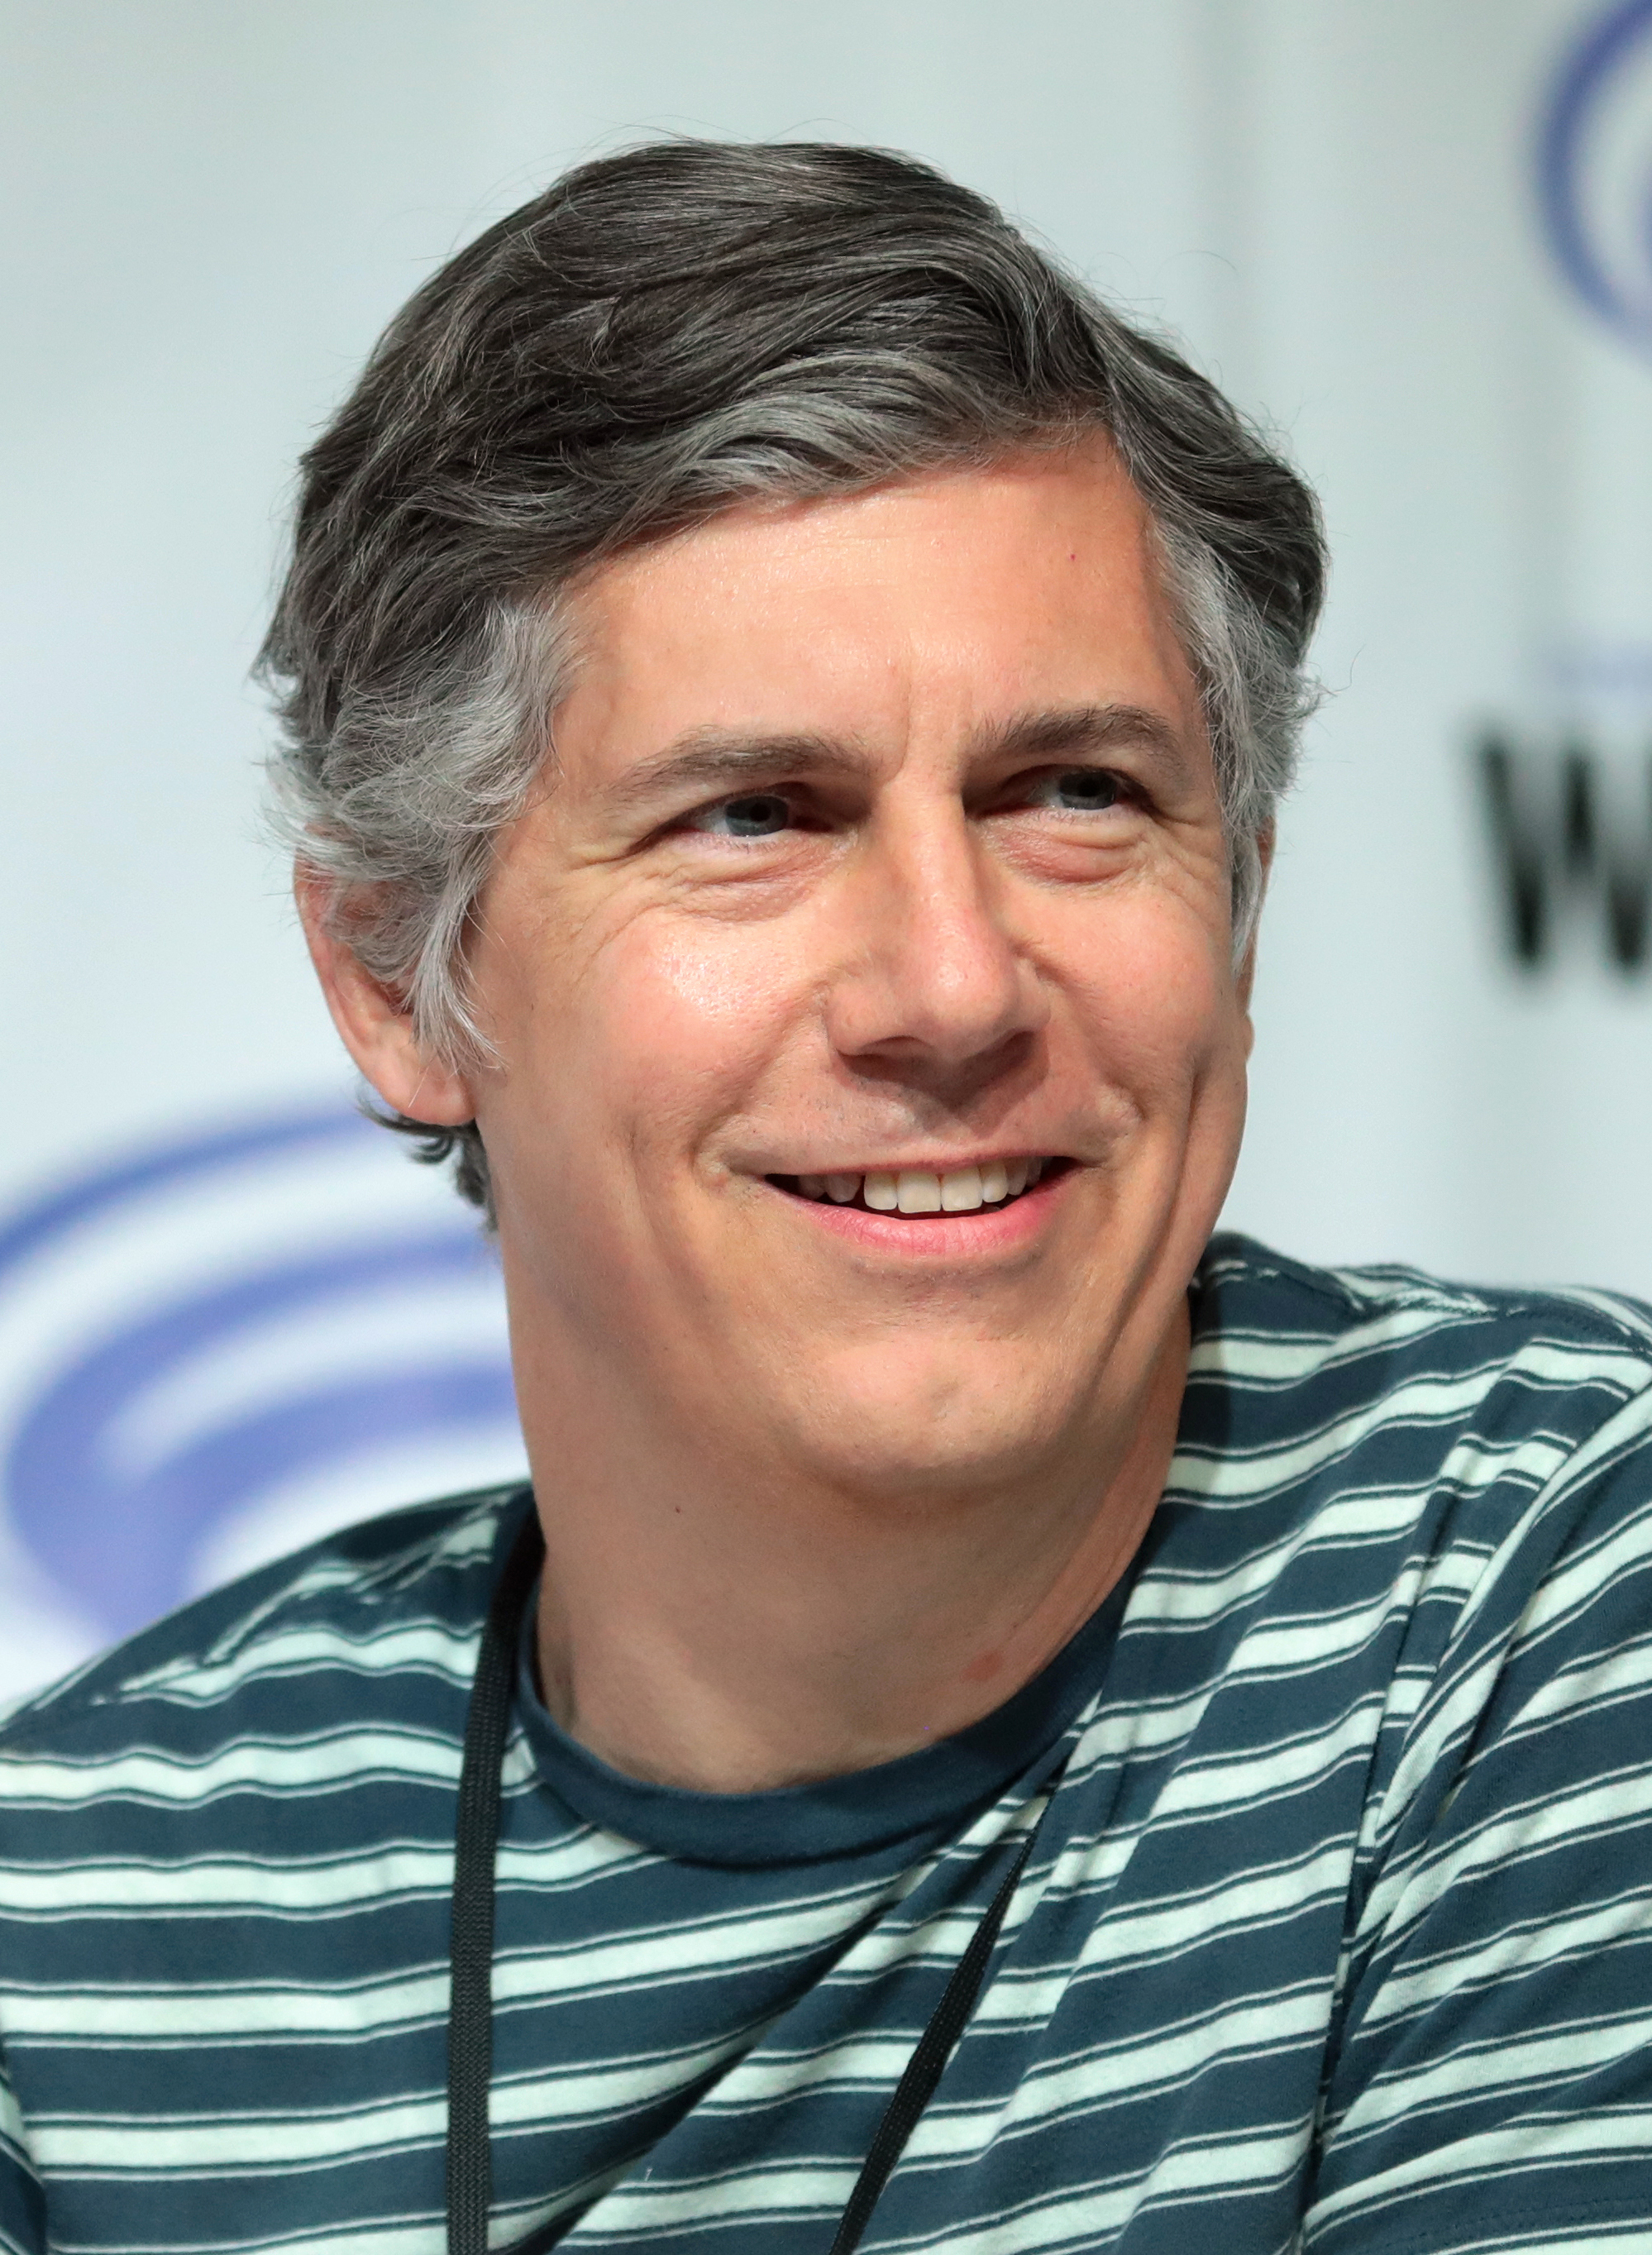 The 53-year old son of father Jack Parnell and mother(?) Chris Parnell in 2020 photo. Chris Parnell earned a  million dollar salary - leaving the net worth at 3 million in 2020